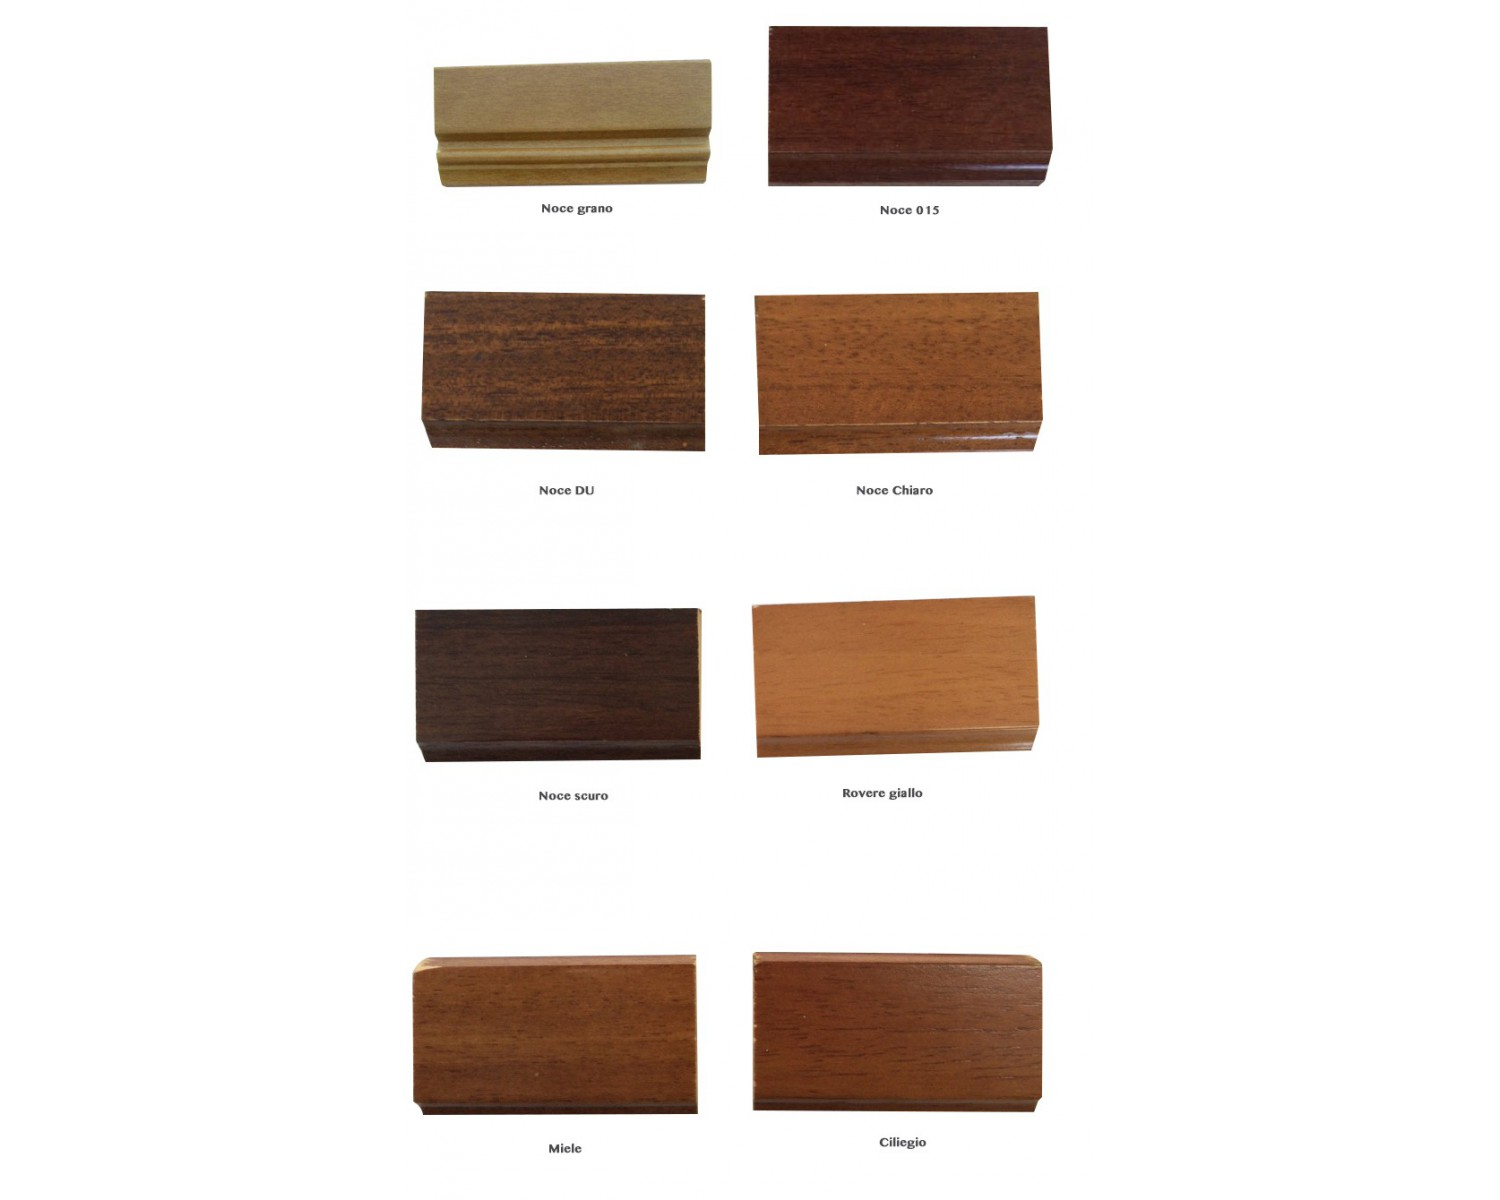 specchio bagno vintage legno : Libreria Country Related Keywords & Suggestions - Libreria Country ...